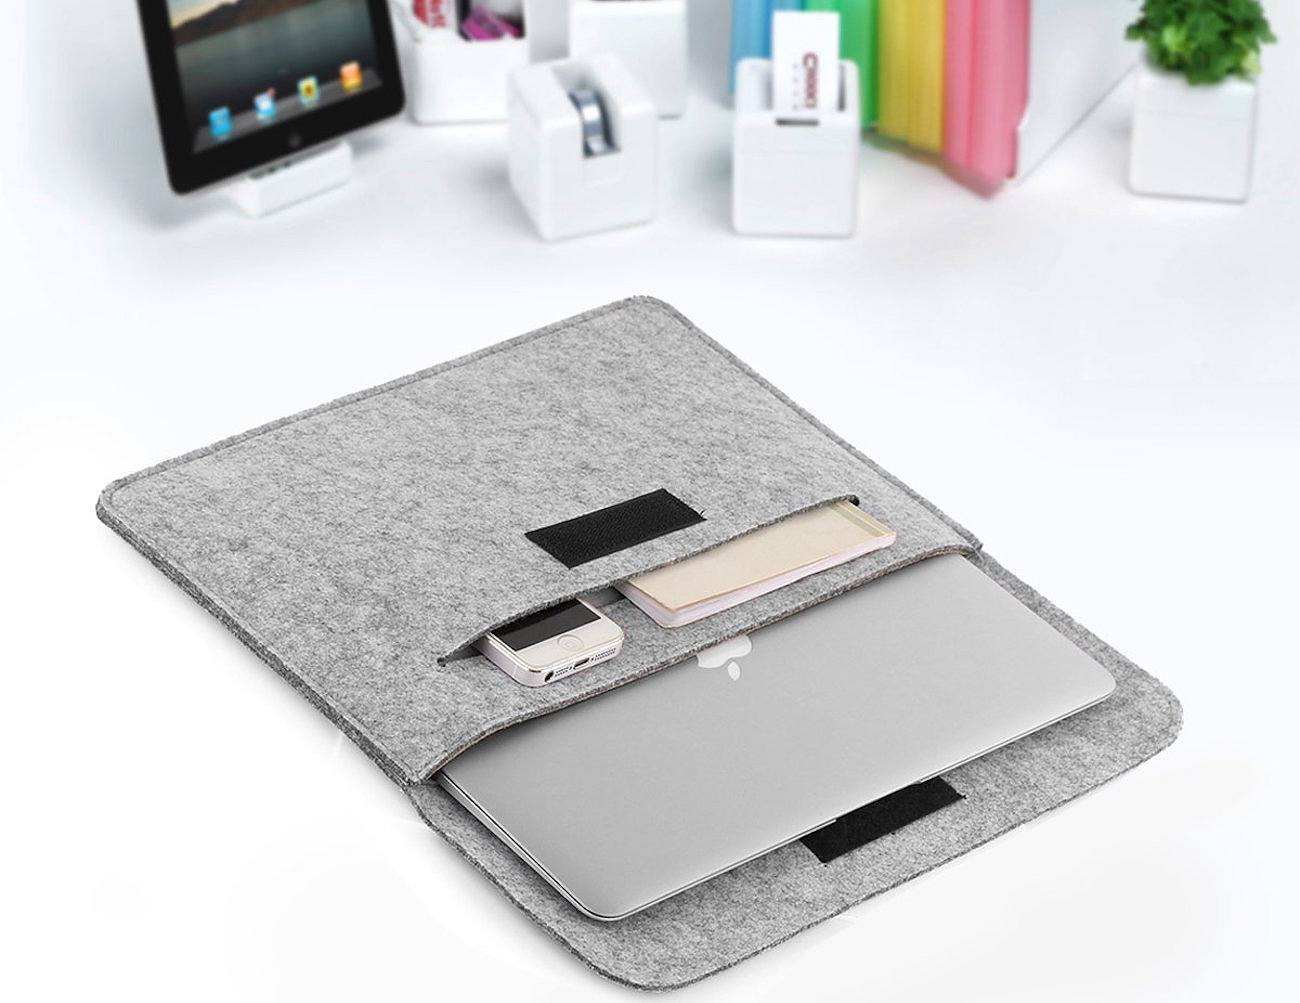 Felt Carrying Sleeve for MacBook by OURAI